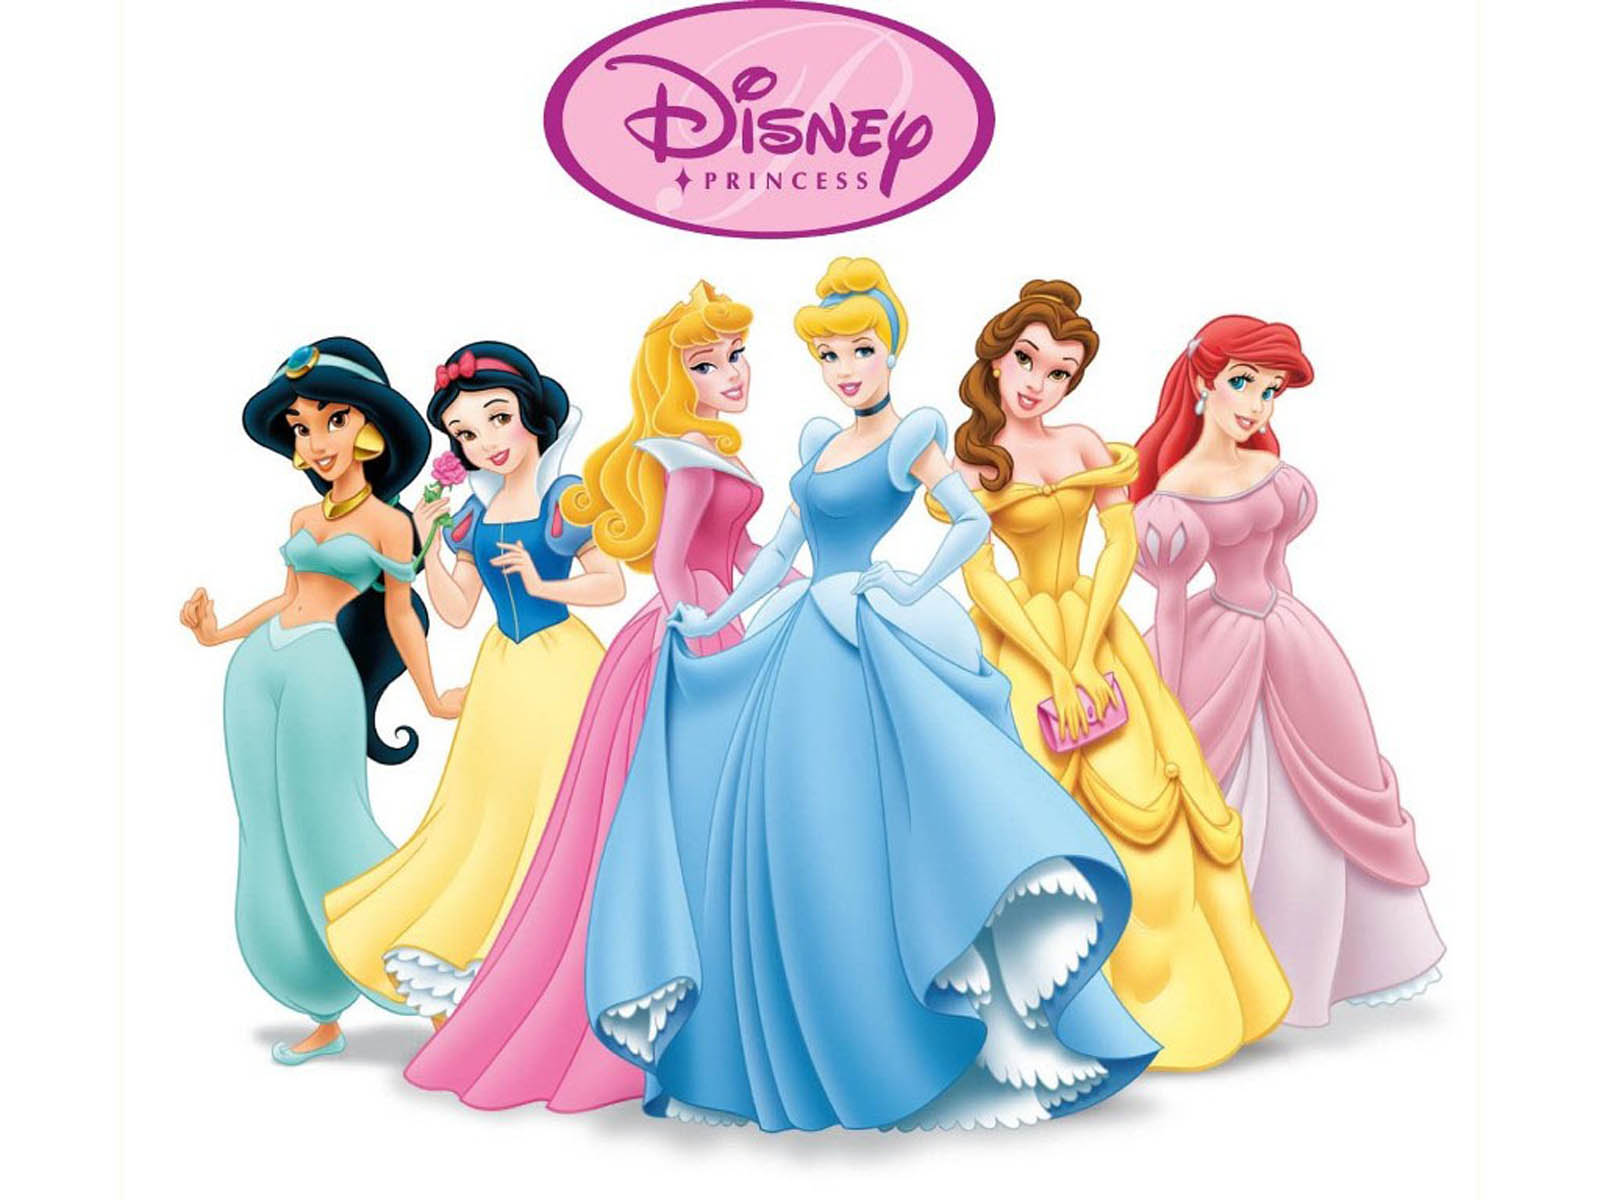 Tag Disney Princess Wallpapers BackgroundsPhotos Images and 1600x1200